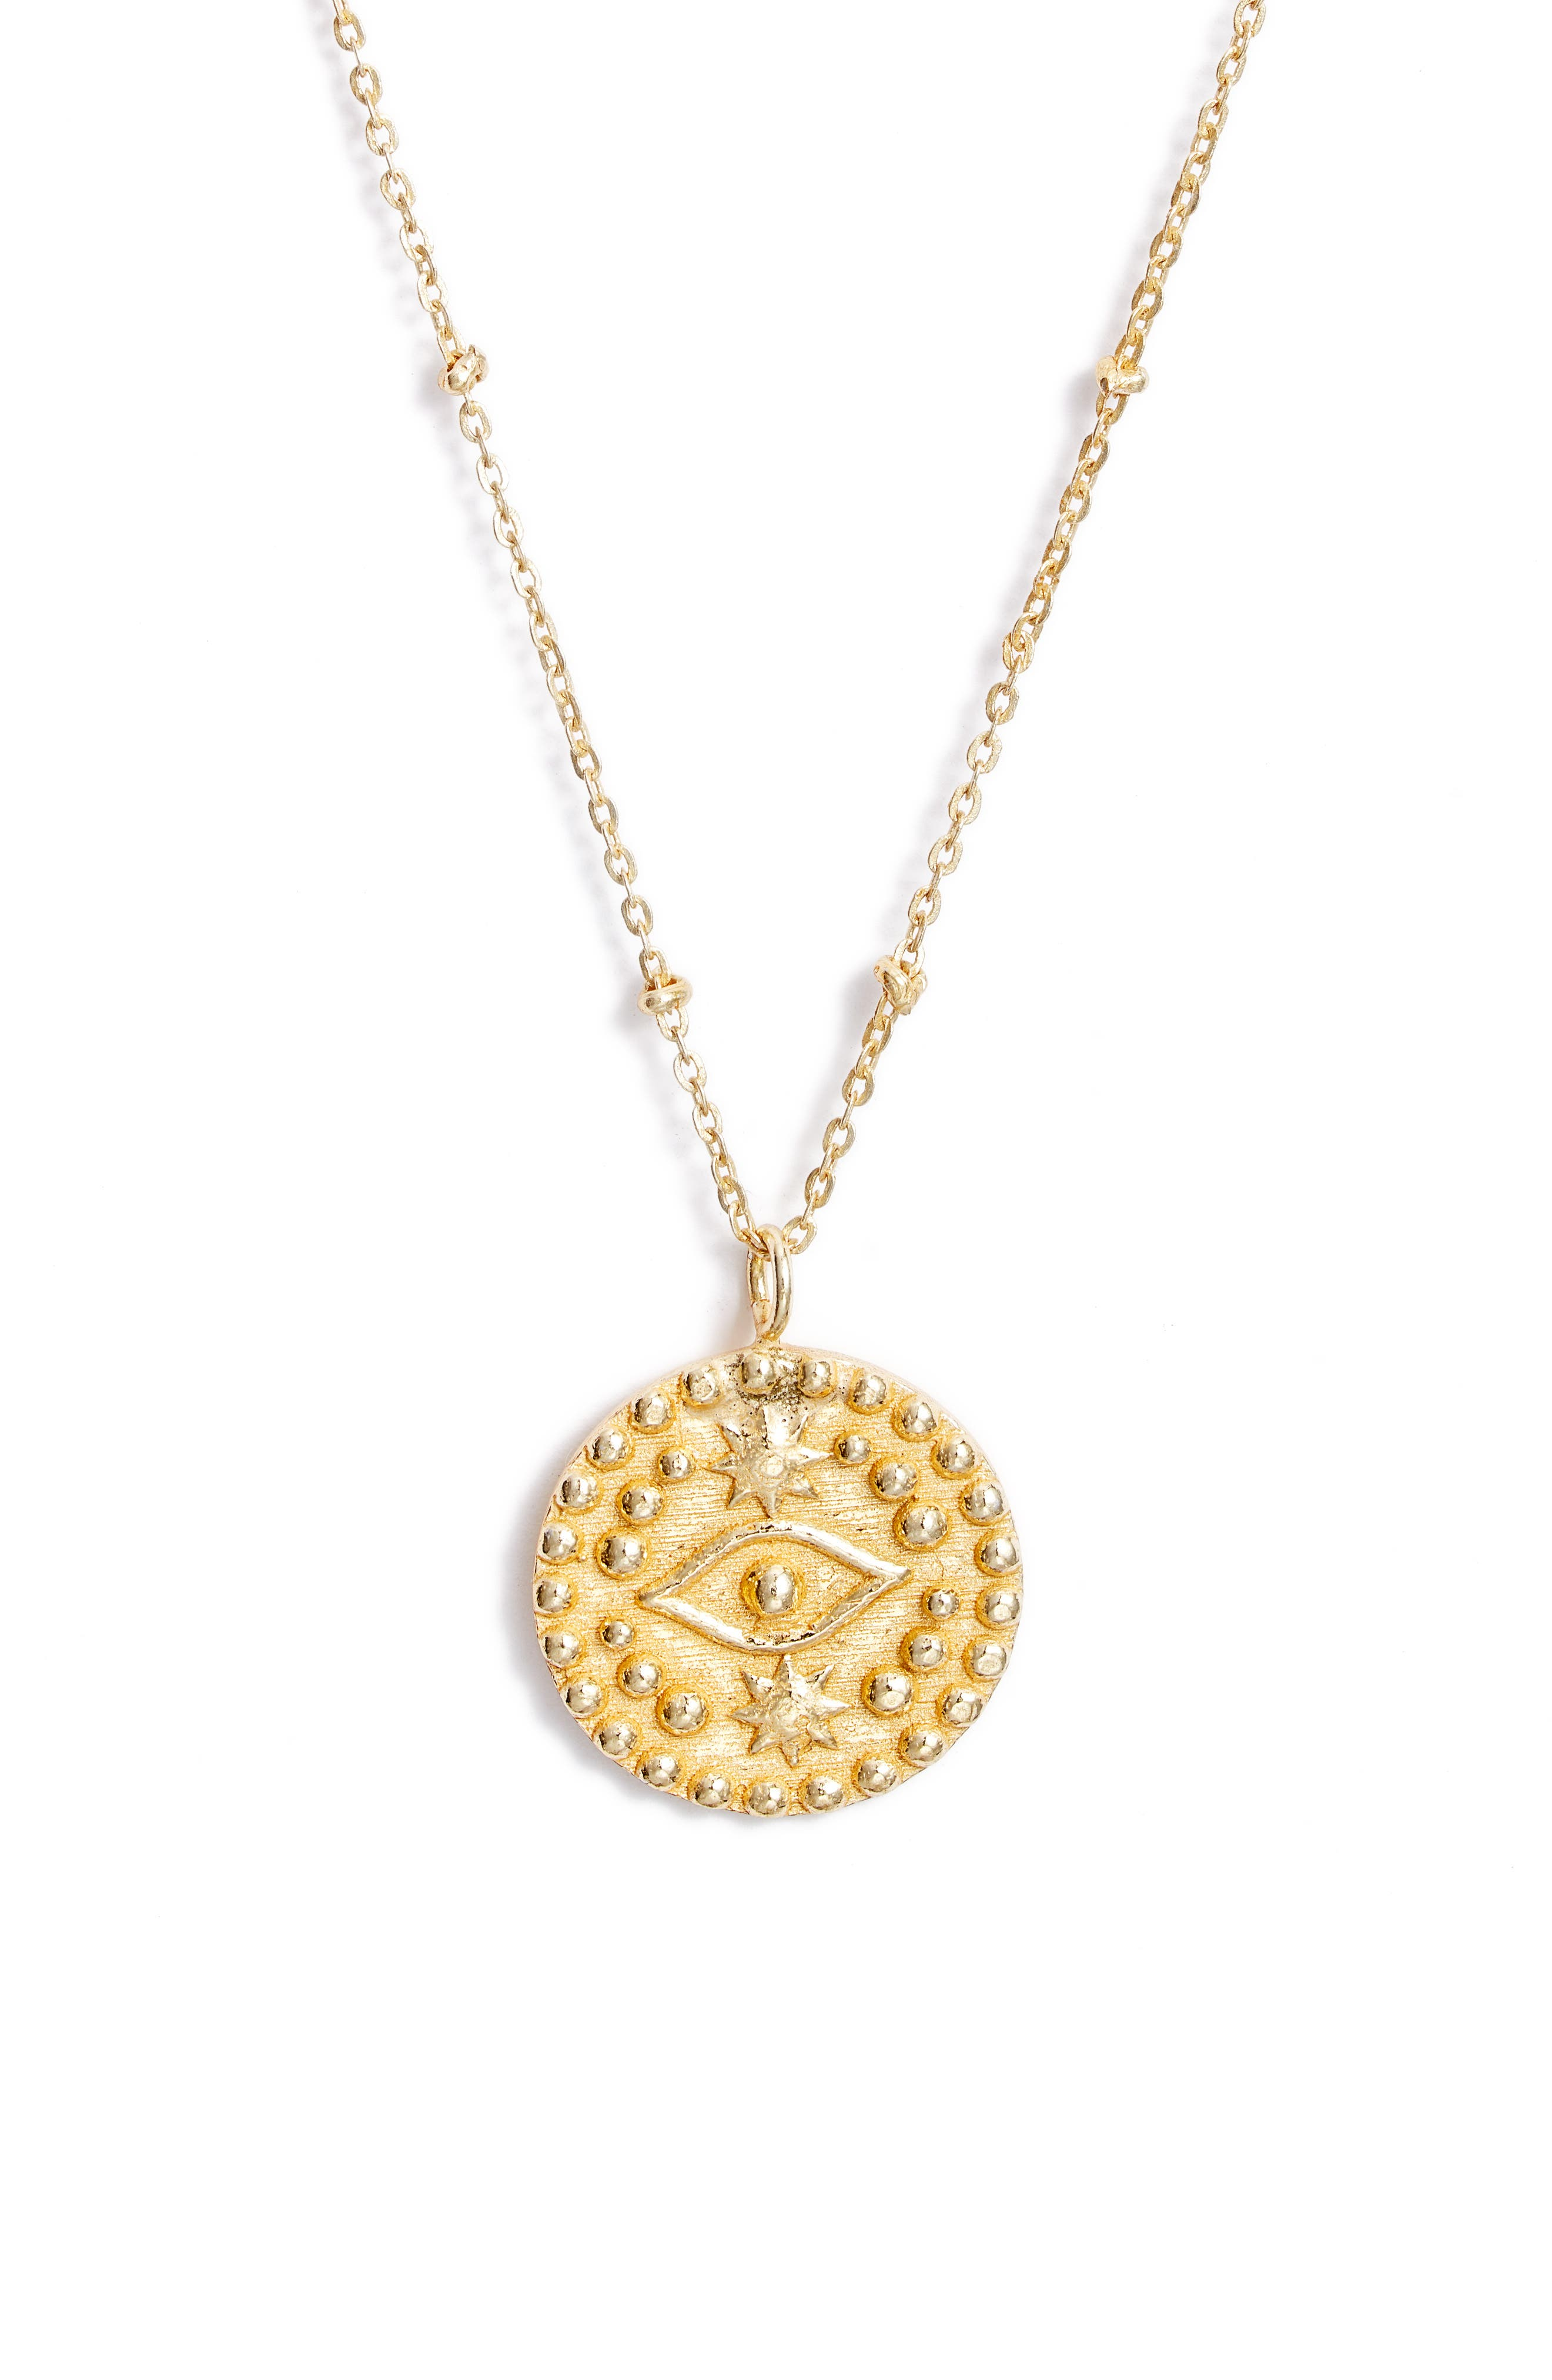 Collections by Joya Sterling Silver Evil Eye Pendant Necklace in Gold at Nordstrom